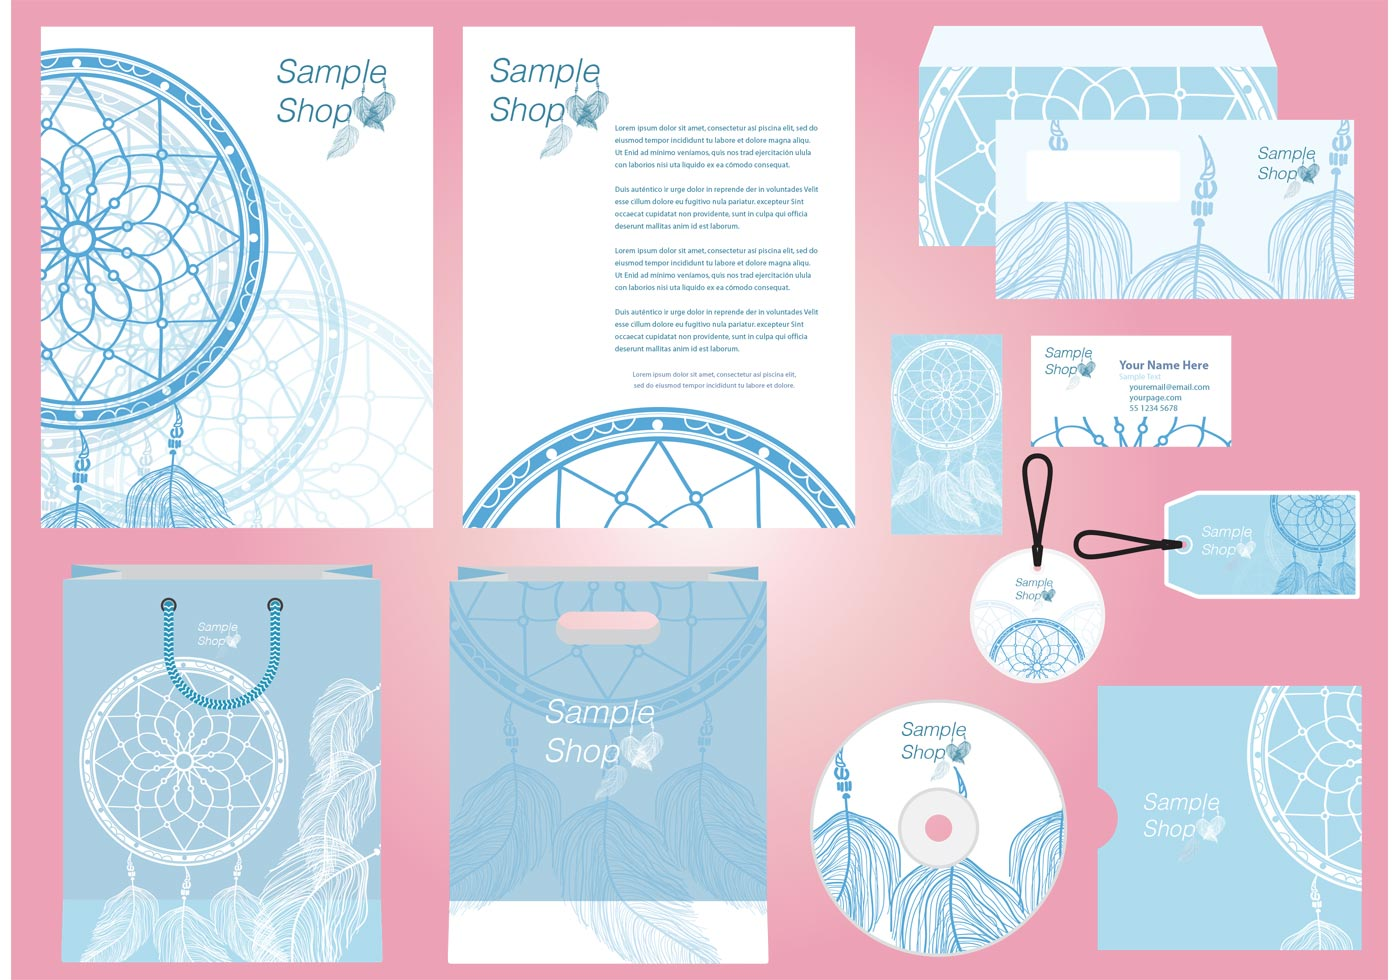 Dreamcatcher profile template vector download free vector art dreamcatcher profile template vector download free vector art stock graphics images friedricerecipe Gallery